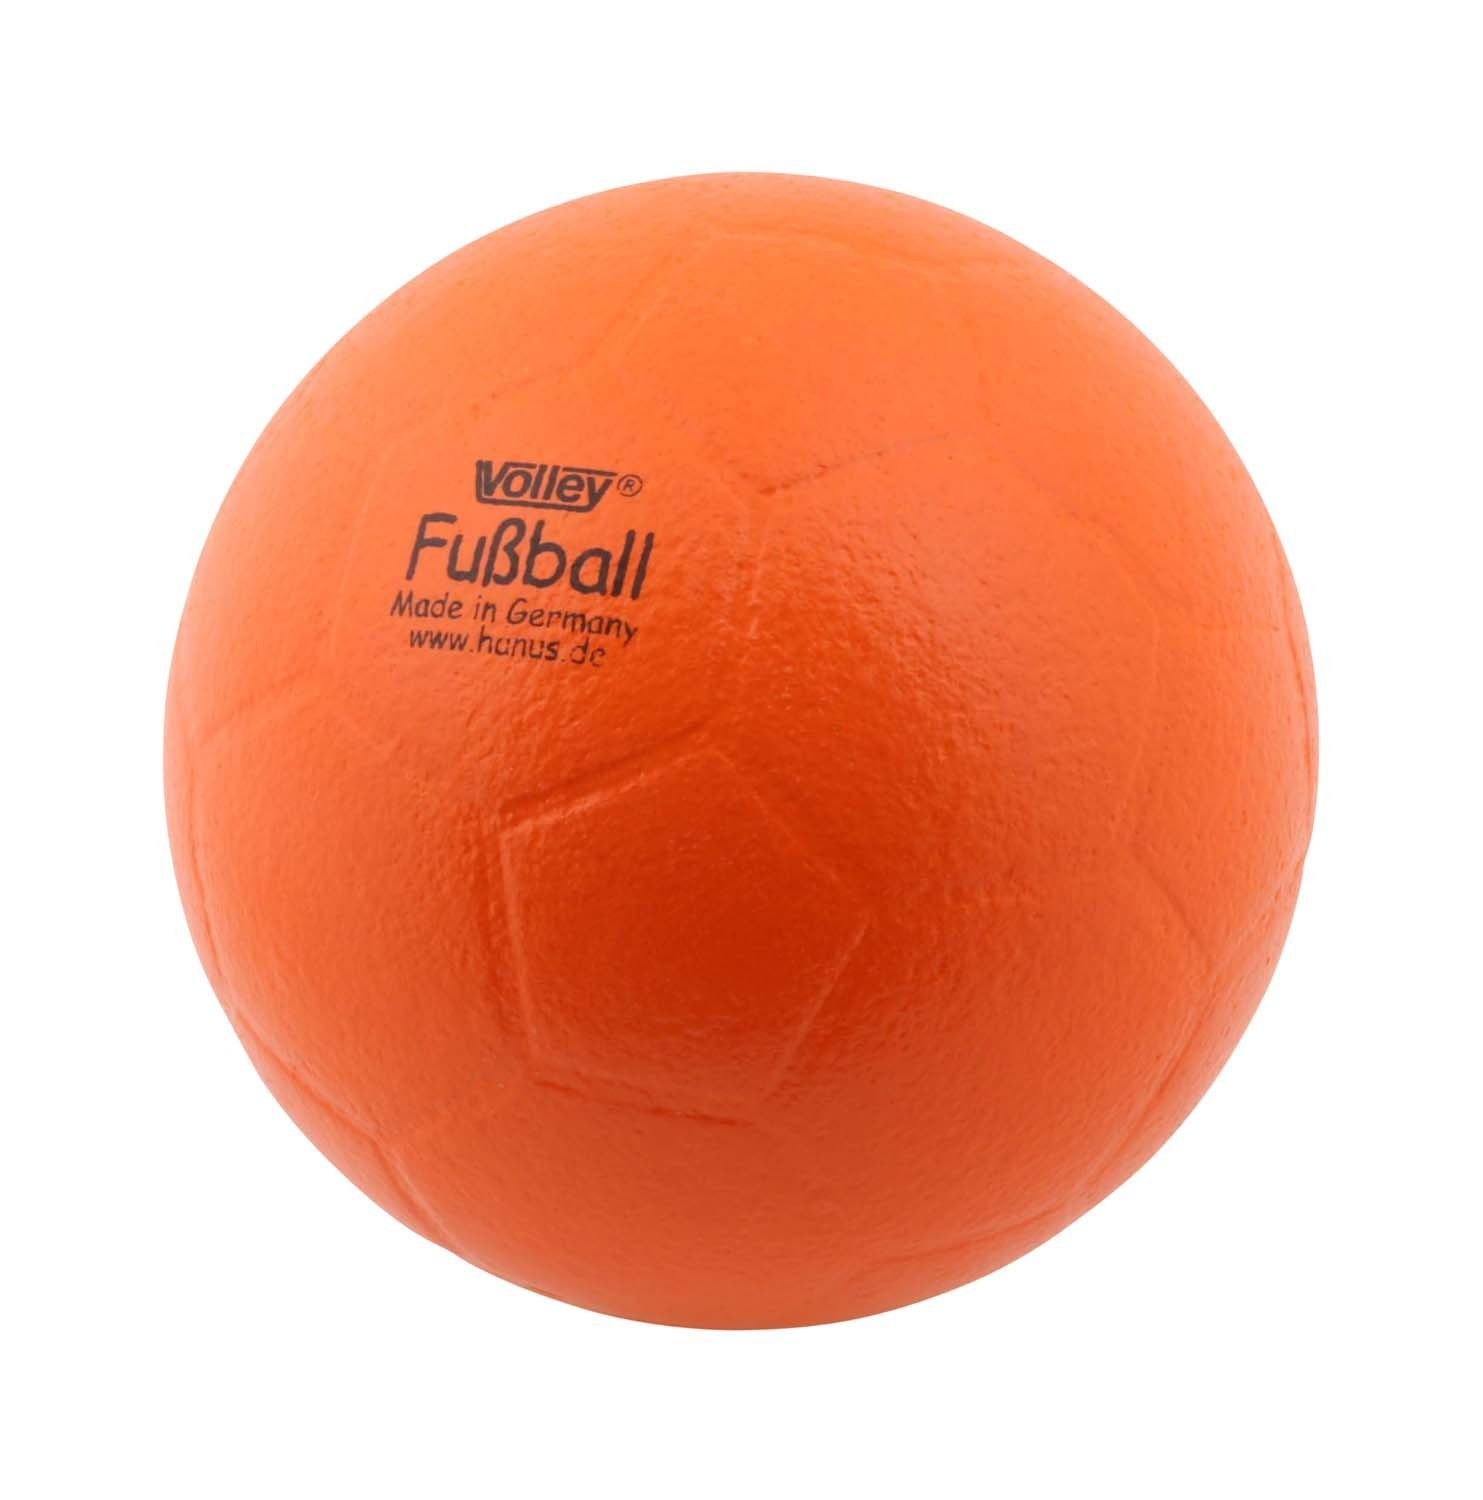 Produktfoto VOLLEY Fußball orange, mit ELE Haut, 18cm gut springend